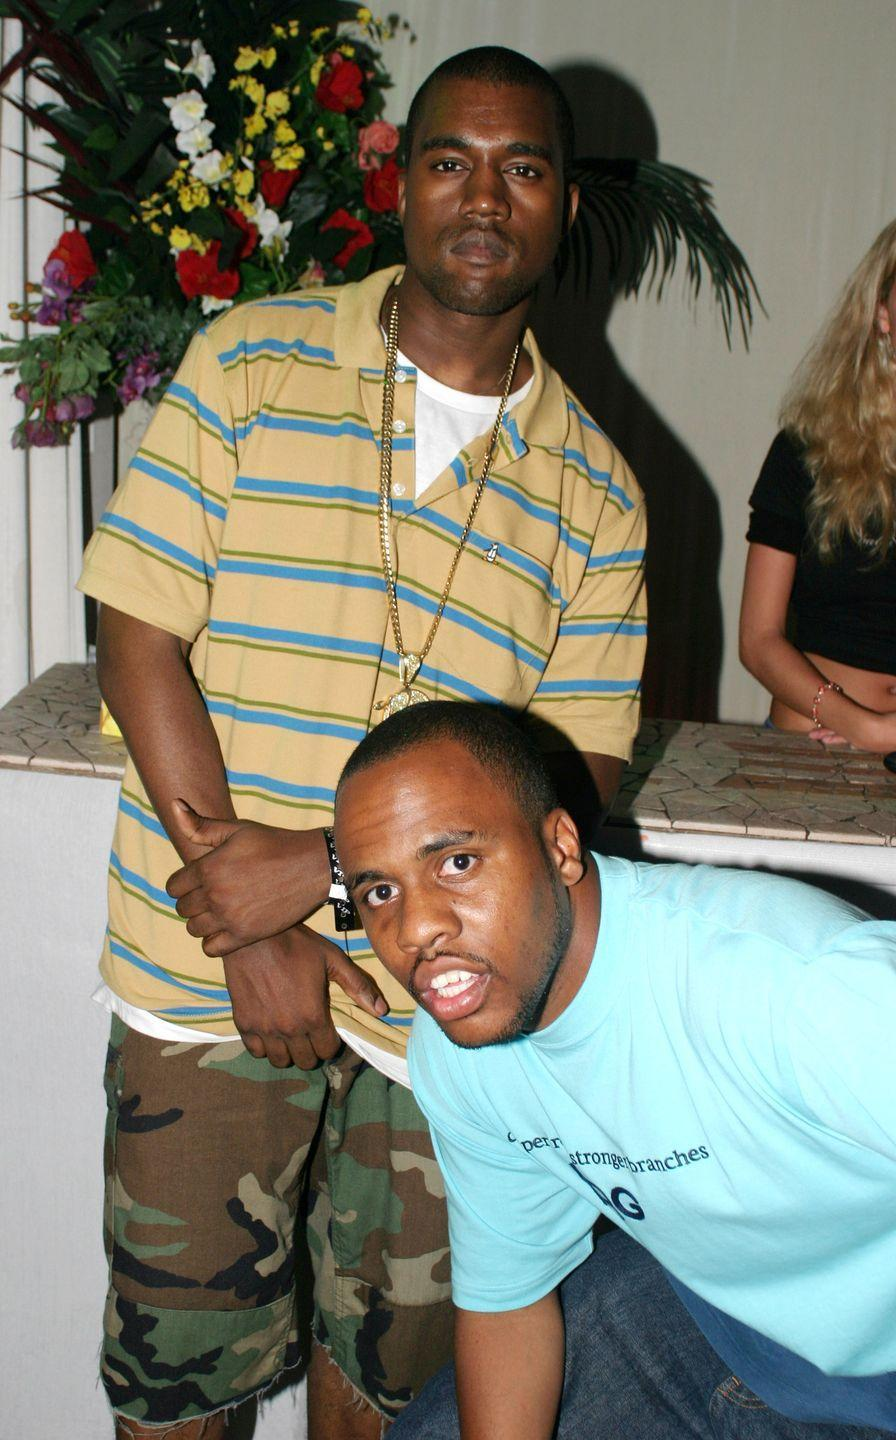 """<p>Back when West was still a producer in 2002, he got into a <a href=""""http://usatoday30.usatoday.com/life/music/news/2005-08-21-kanye-west-inside_x.htm"""" rel=""""nofollow noopener"""" target=""""_blank"""" data-ylk=""""slk:car accident where he almost died"""" class=""""link rapid-noclick-resp"""">car accident where he almost died</a>. He wrote about the experience in his debut album, <em>Through the Wire</em>, which launched his rapping career. """"If I would have passed that night, that would have been the end of my legacy,"""" he told USA Today (via <a href=""""https://www.insider.com/celebrities-who-almost-died-2019-1#a-car-crash-inspired-kanye-wests-debut-single-7"""" rel=""""nofollow noopener"""" target=""""_blank"""" data-ylk=""""slk:Insider"""" class=""""link rapid-noclick-resp"""">Insider</a>). """"Now when I go into the studio, I act like this could possibly be my last day.""""</p>"""